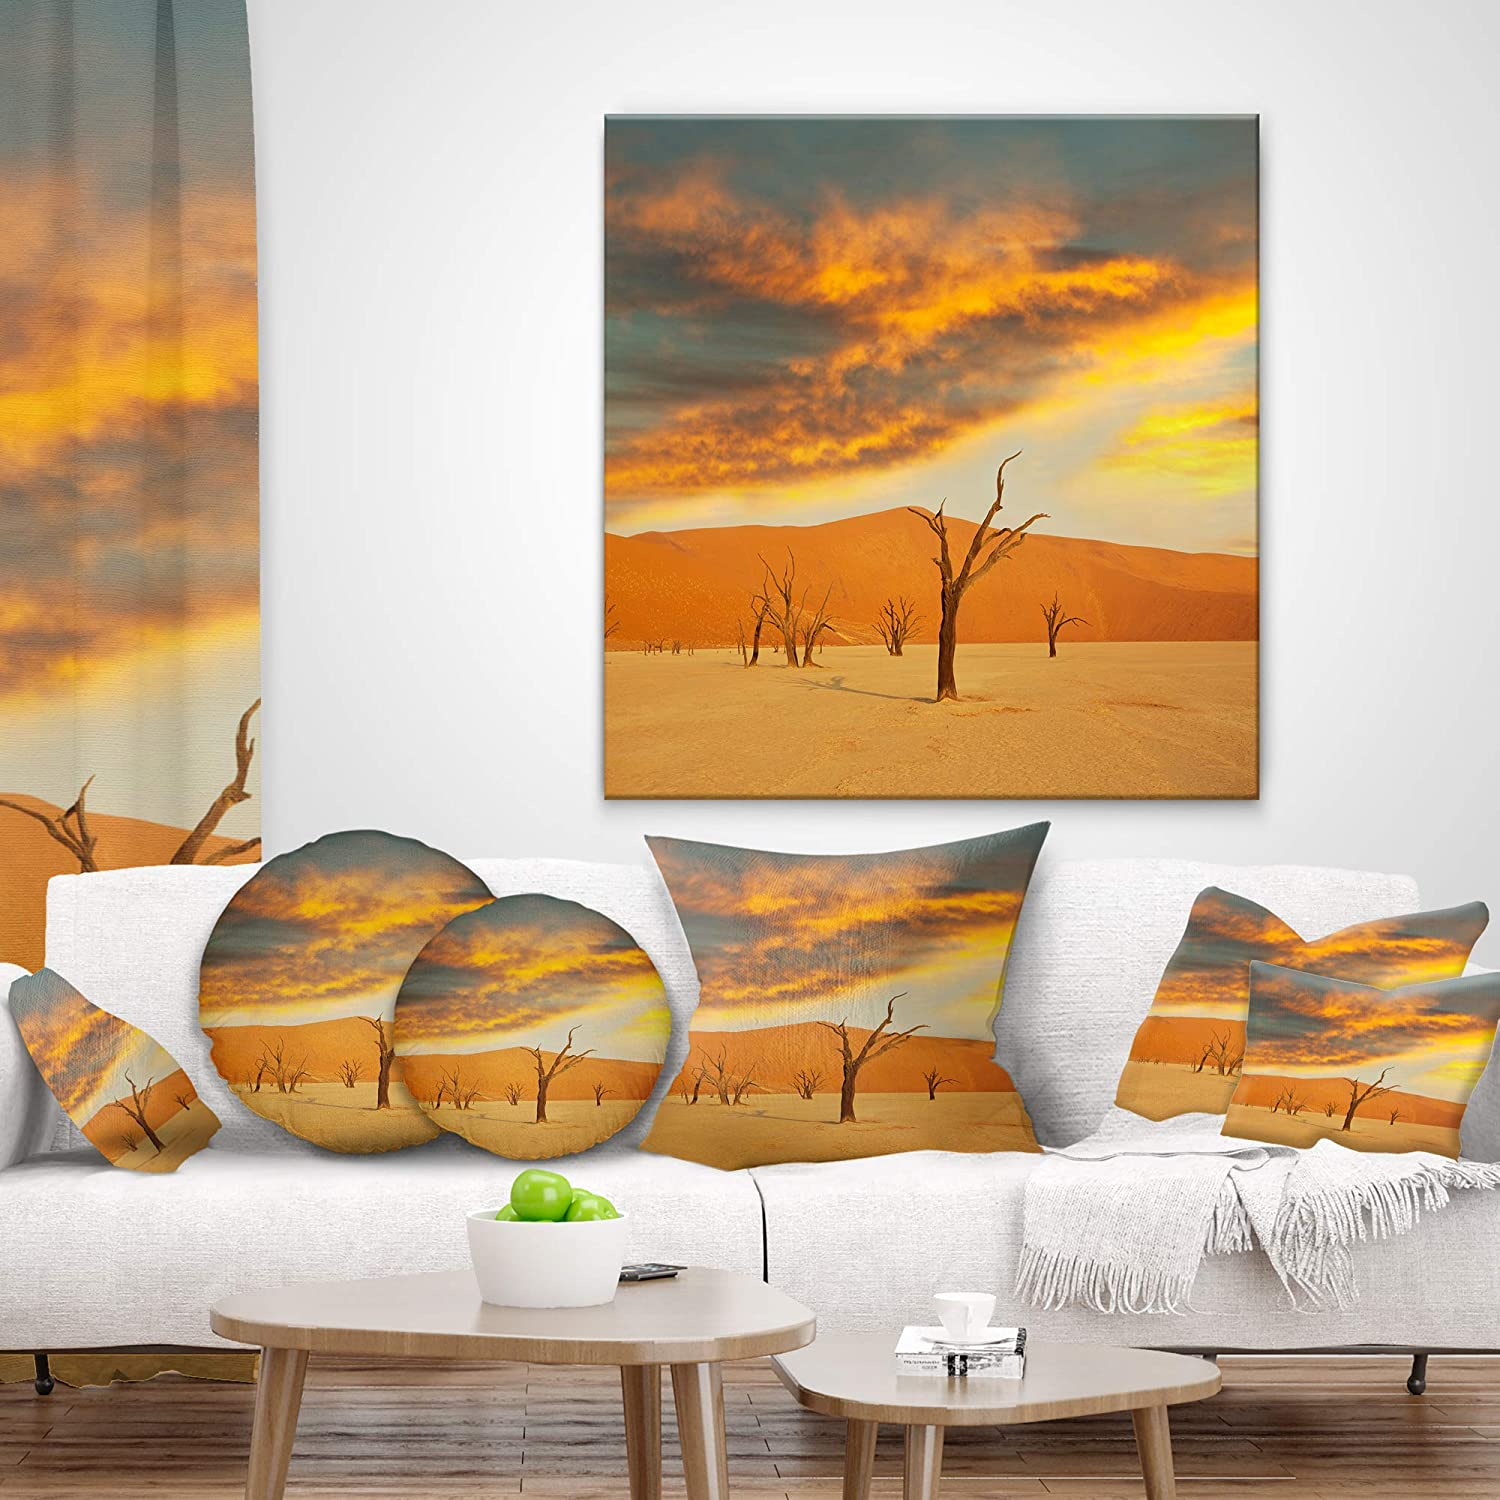 Designart Cu12517 12 20 Colorful Death Valley With Dry Trees African Landscape Printed Lumbar Cushion Cover For Living Room X 20 In Sofa Throw Pillow 12 In Insert Side In Throw Pillow Covers Home